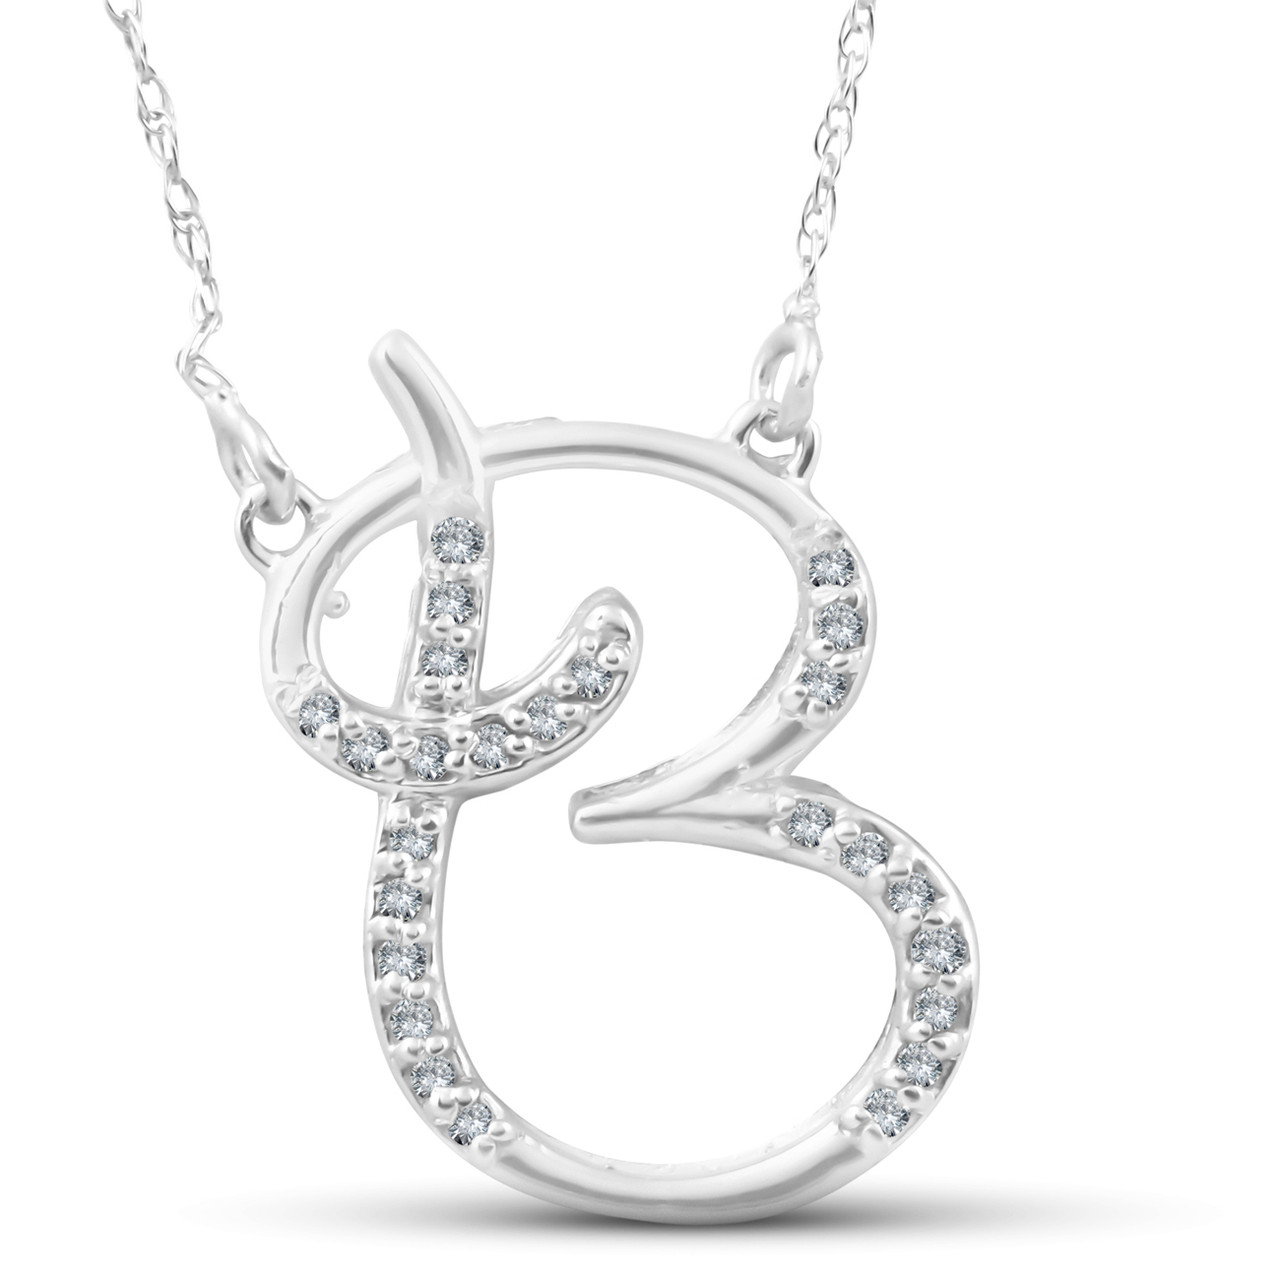 b jewelryaffairs pendants initial diamond and pendant large chain collections gold in by necklaces disk silver white